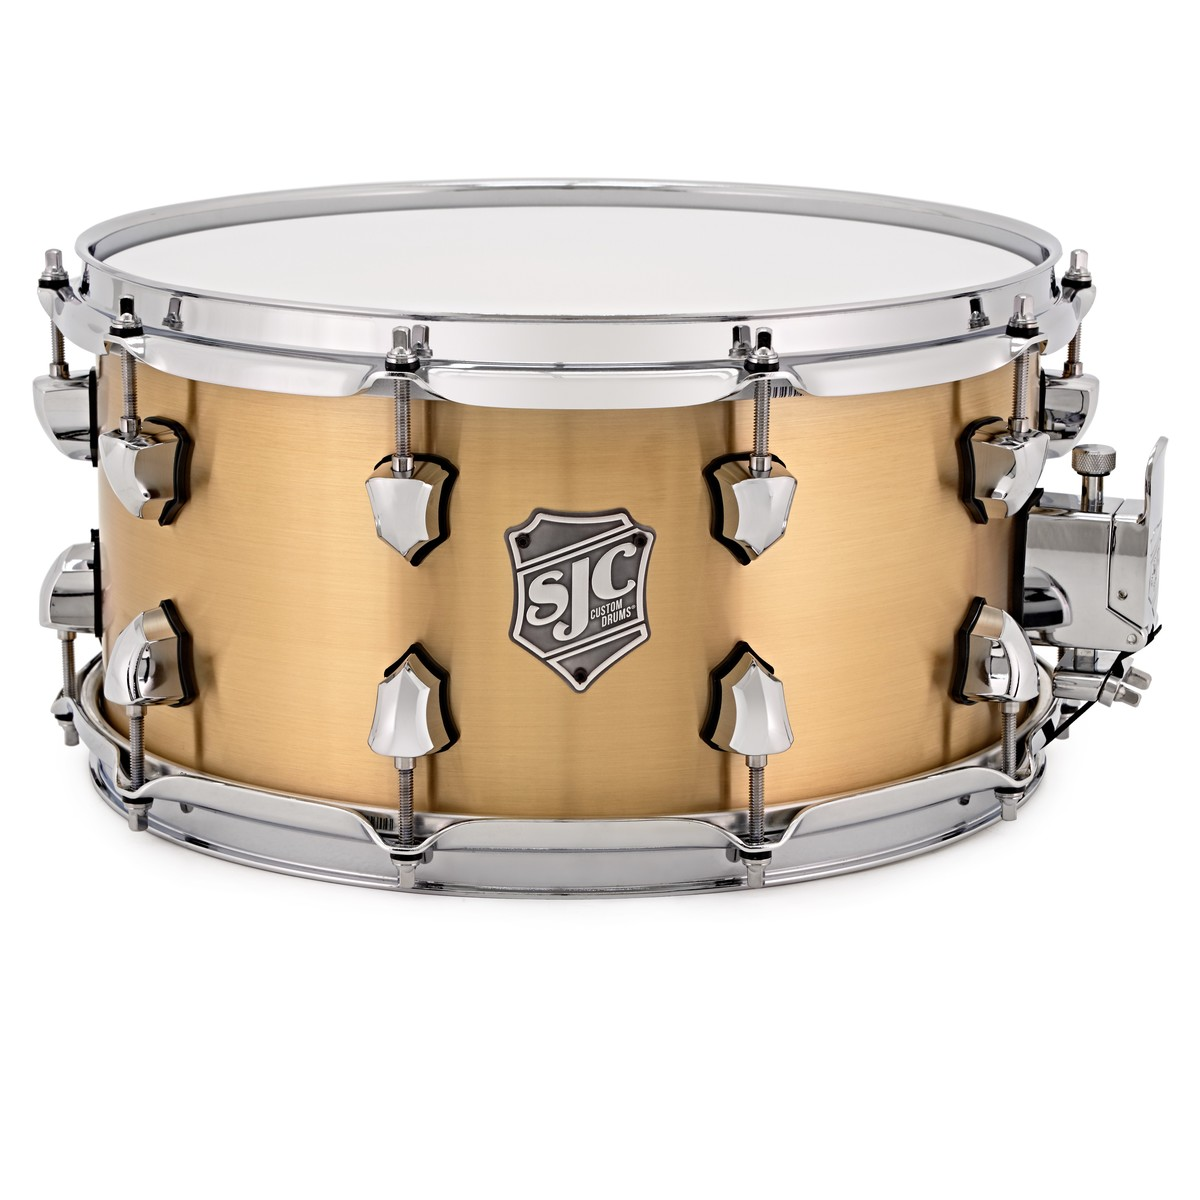 sjc drums 14 39 39 x 7 39 39 goliath snare drum rolled brass at gear4music. Black Bedroom Furniture Sets. Home Design Ideas